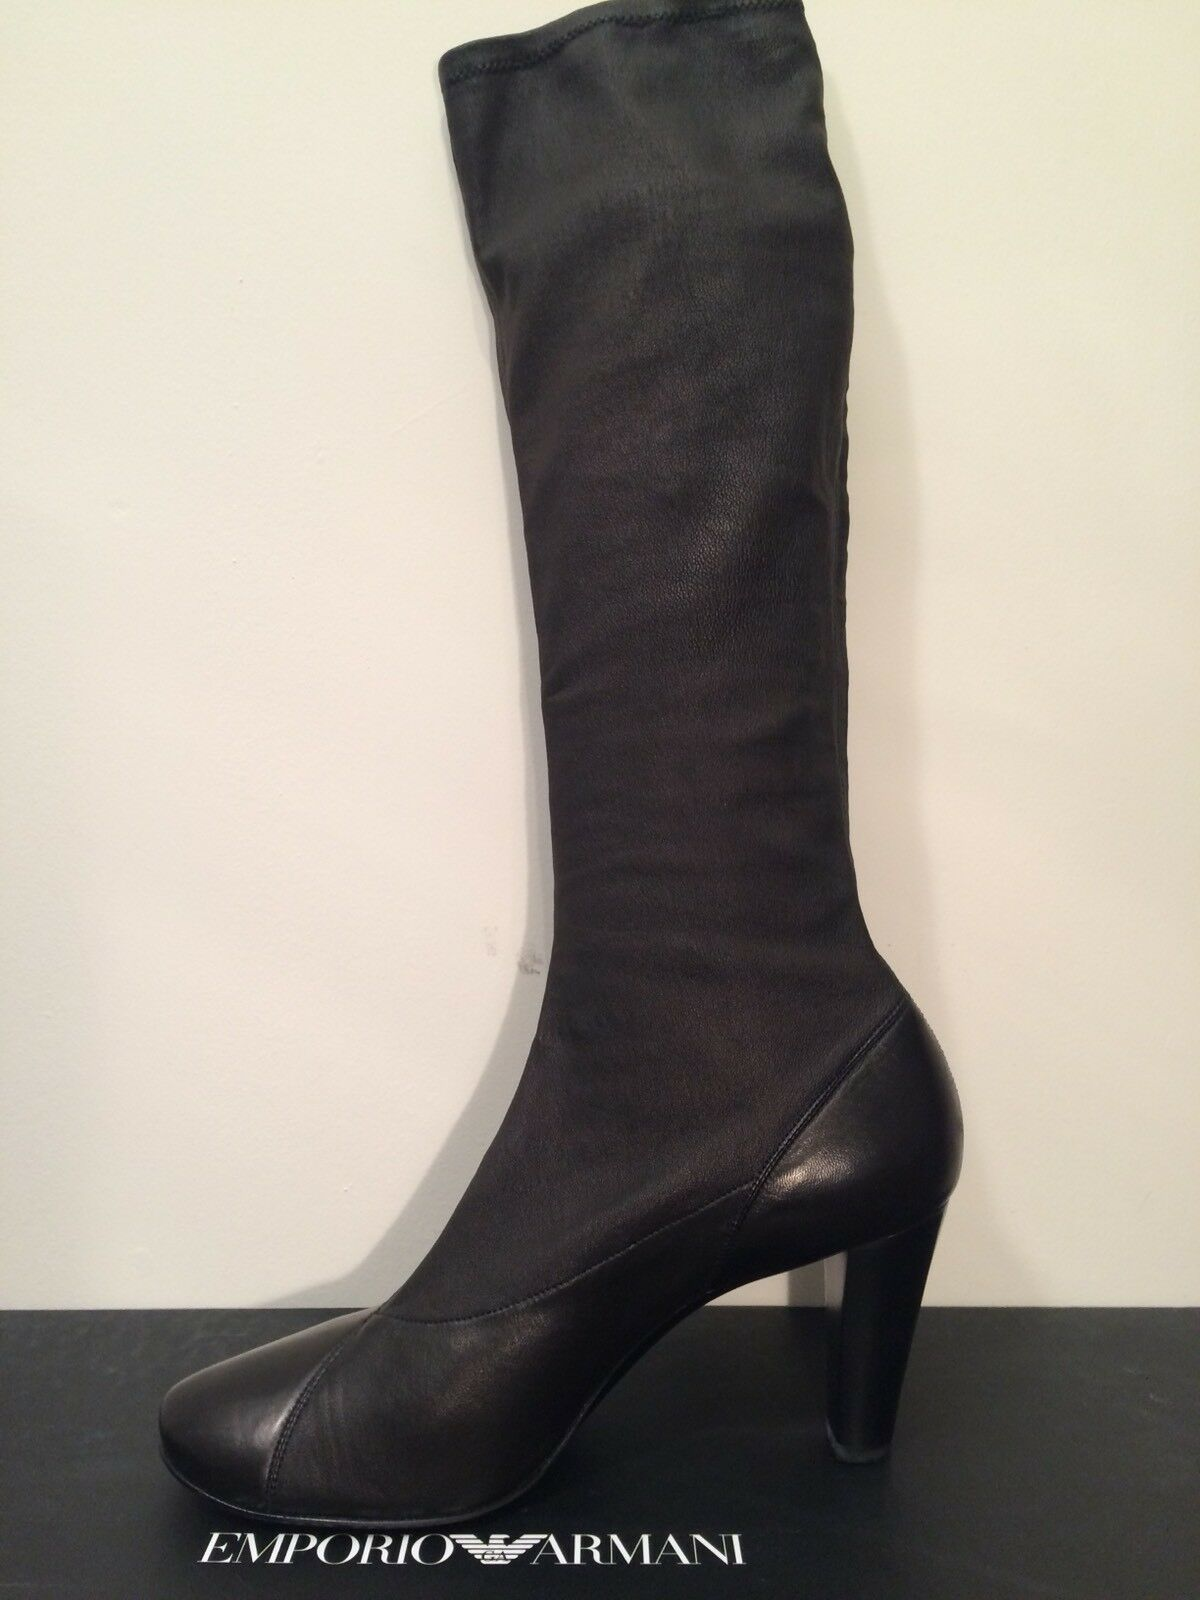 EMPORIO ARMANI STYLISH LEATHER BOOTS ITALIAN SIZE 39.5